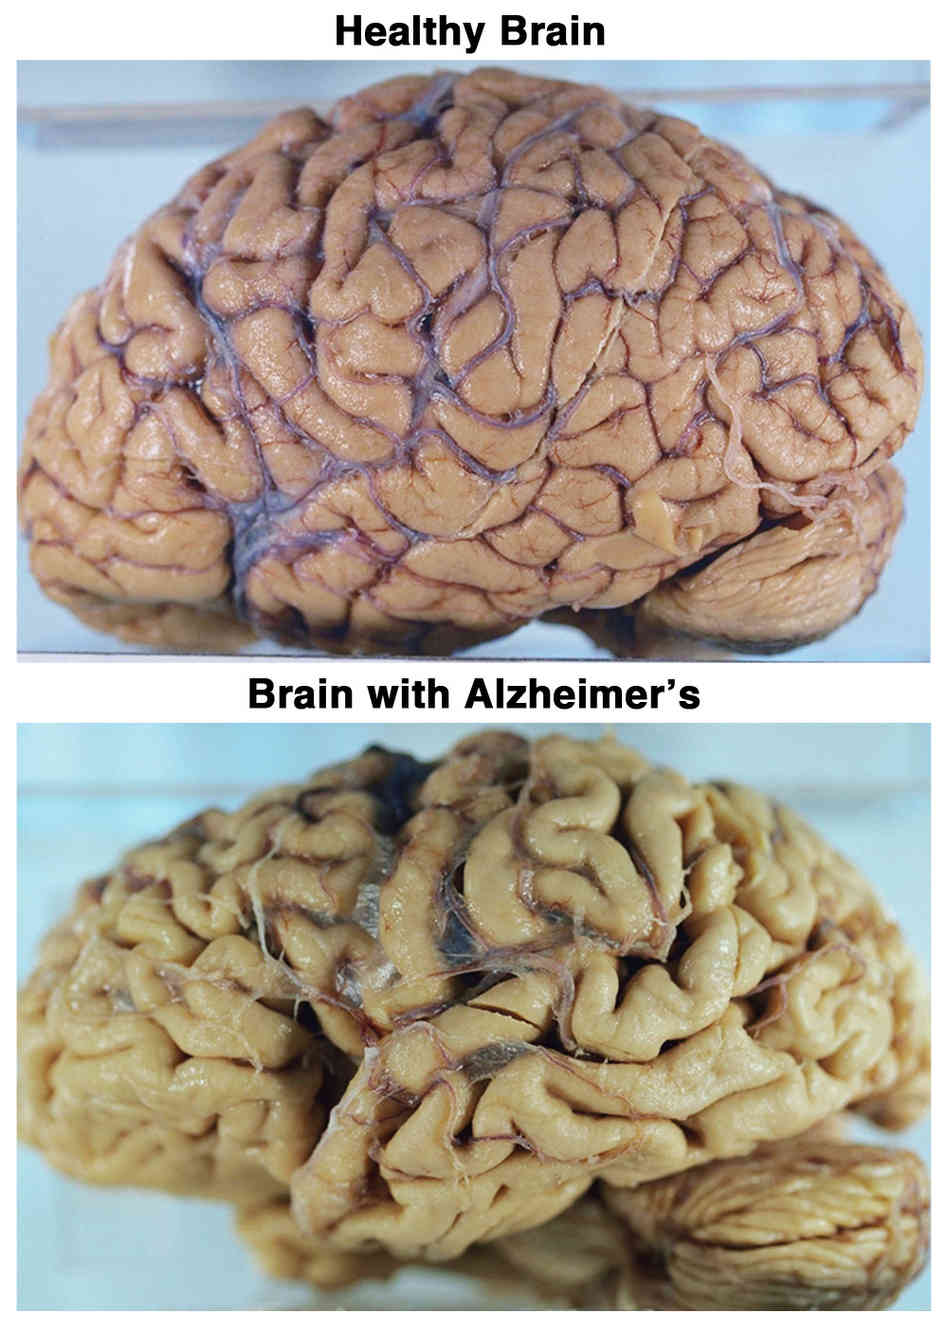 Is There A Test For Alzheimers >> Alzheimer's Disease | Here's to the Future! Medical Blog